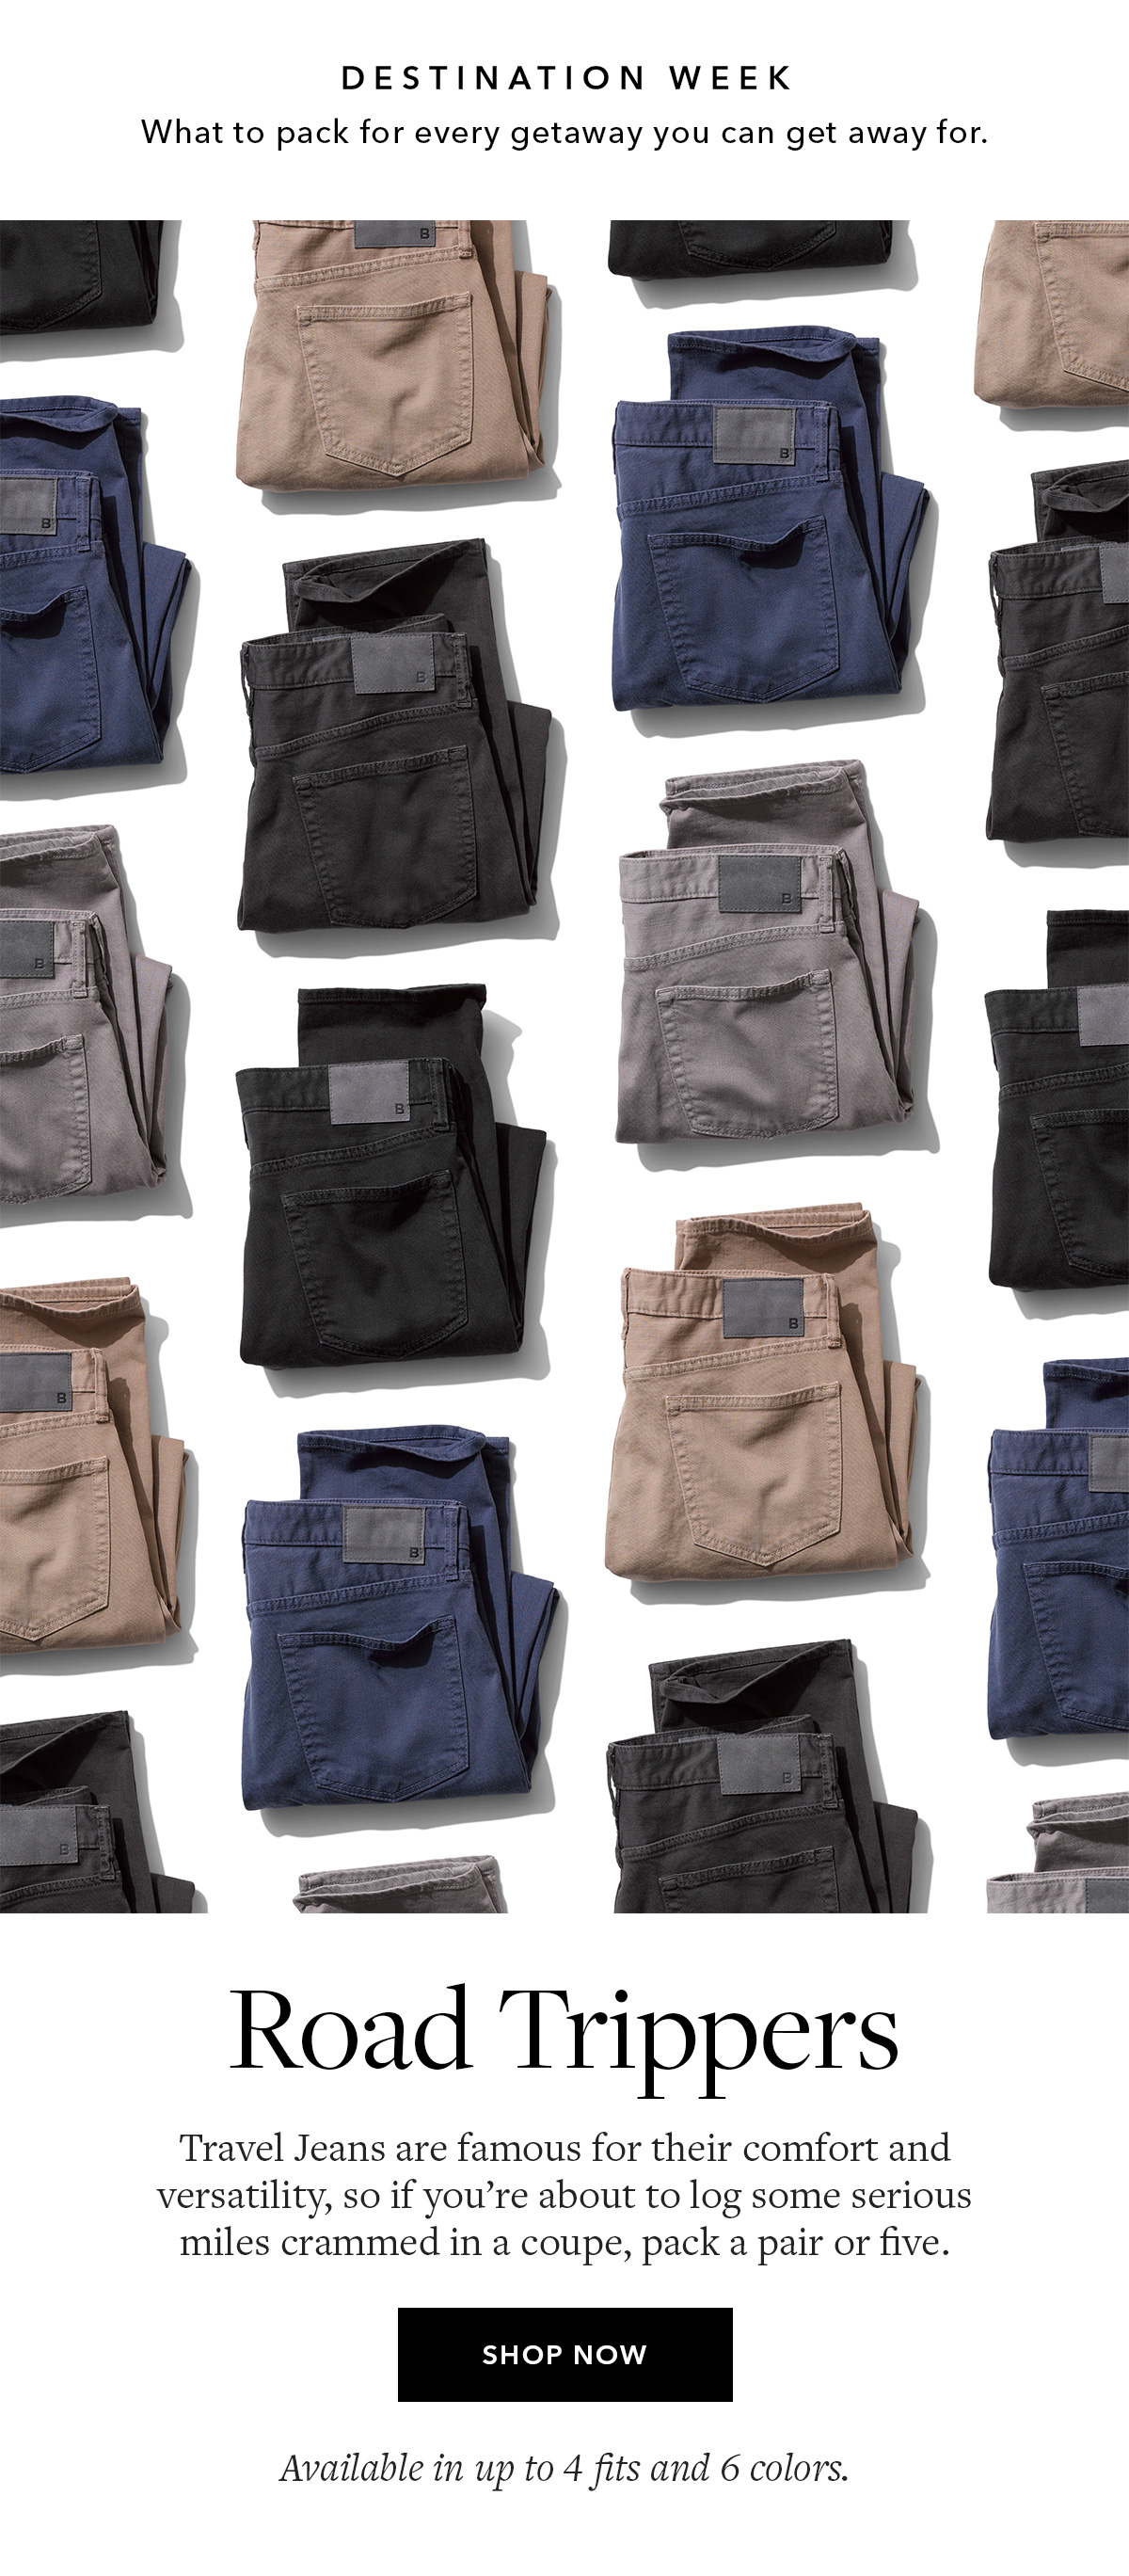 Road Trippers // Travel Jeans are famous for their comfort and versatility, so if you're about to log some serious miles crammed in a coupe, pack a pair or five.   SHOP TRAVEL JEANS →